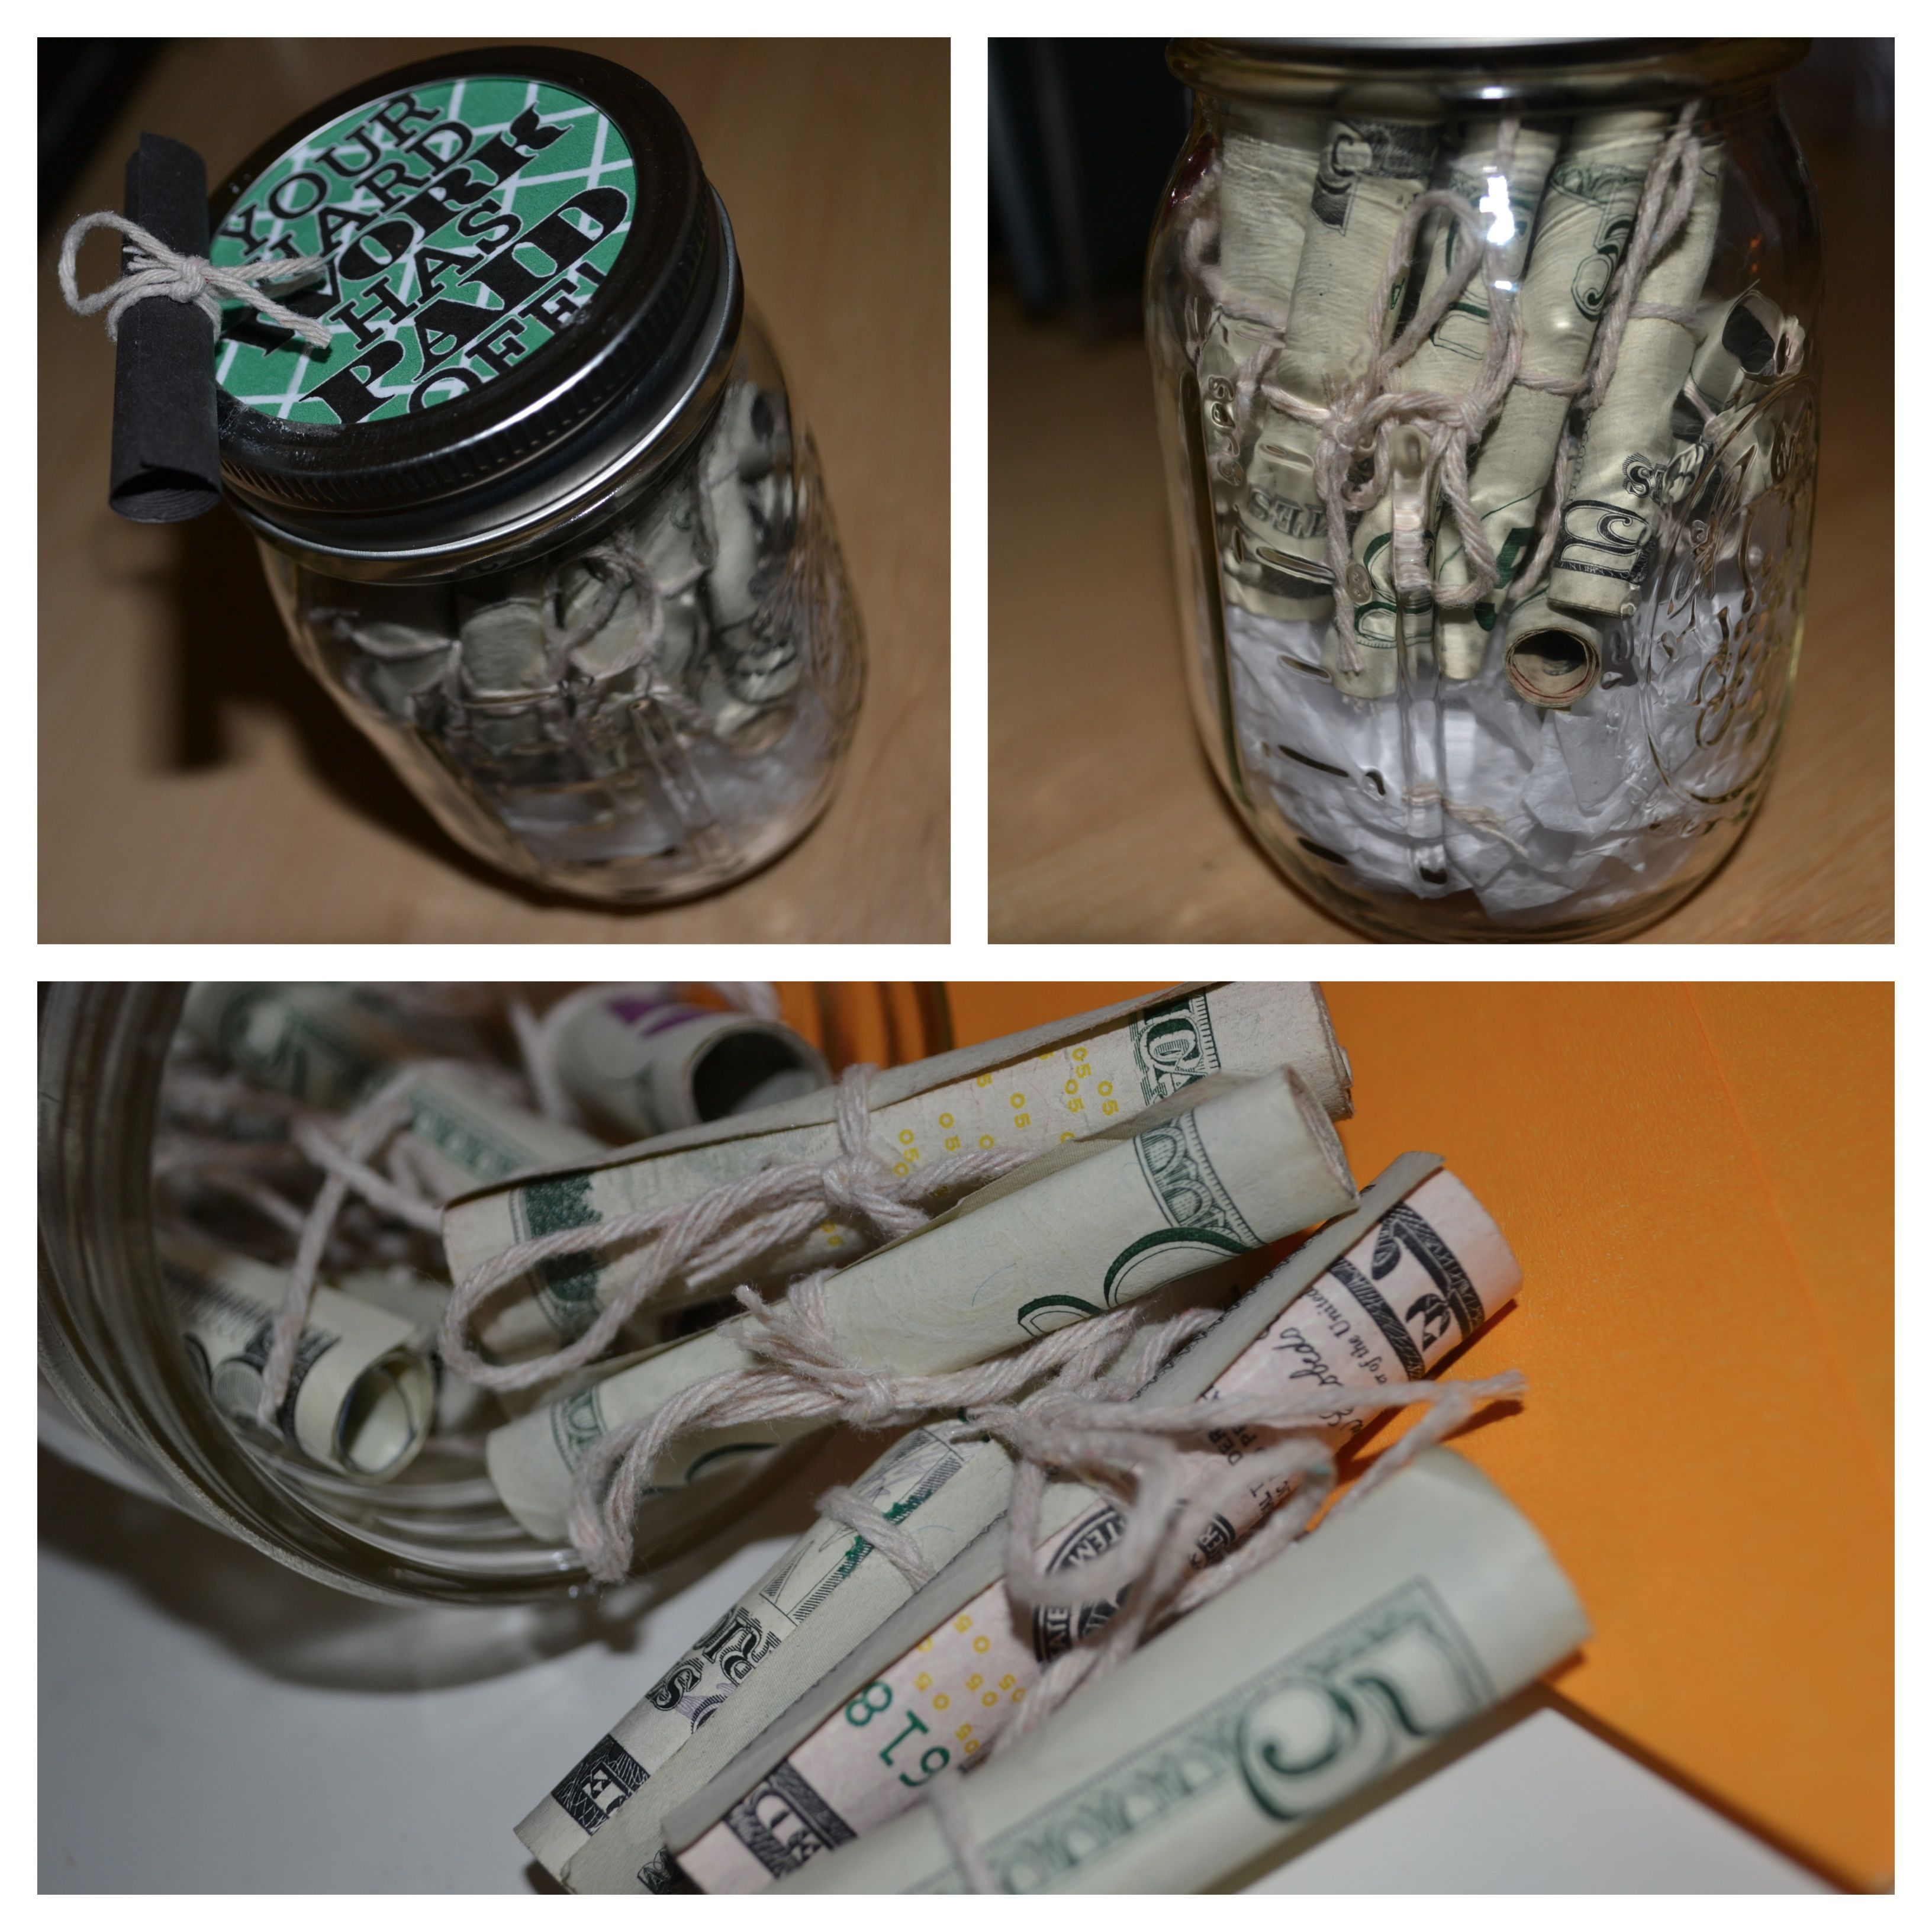 Pin By Lauren R On It S About That Time Senior Year Graduation Mason Jars Gifts Teacher Birthday Gifts